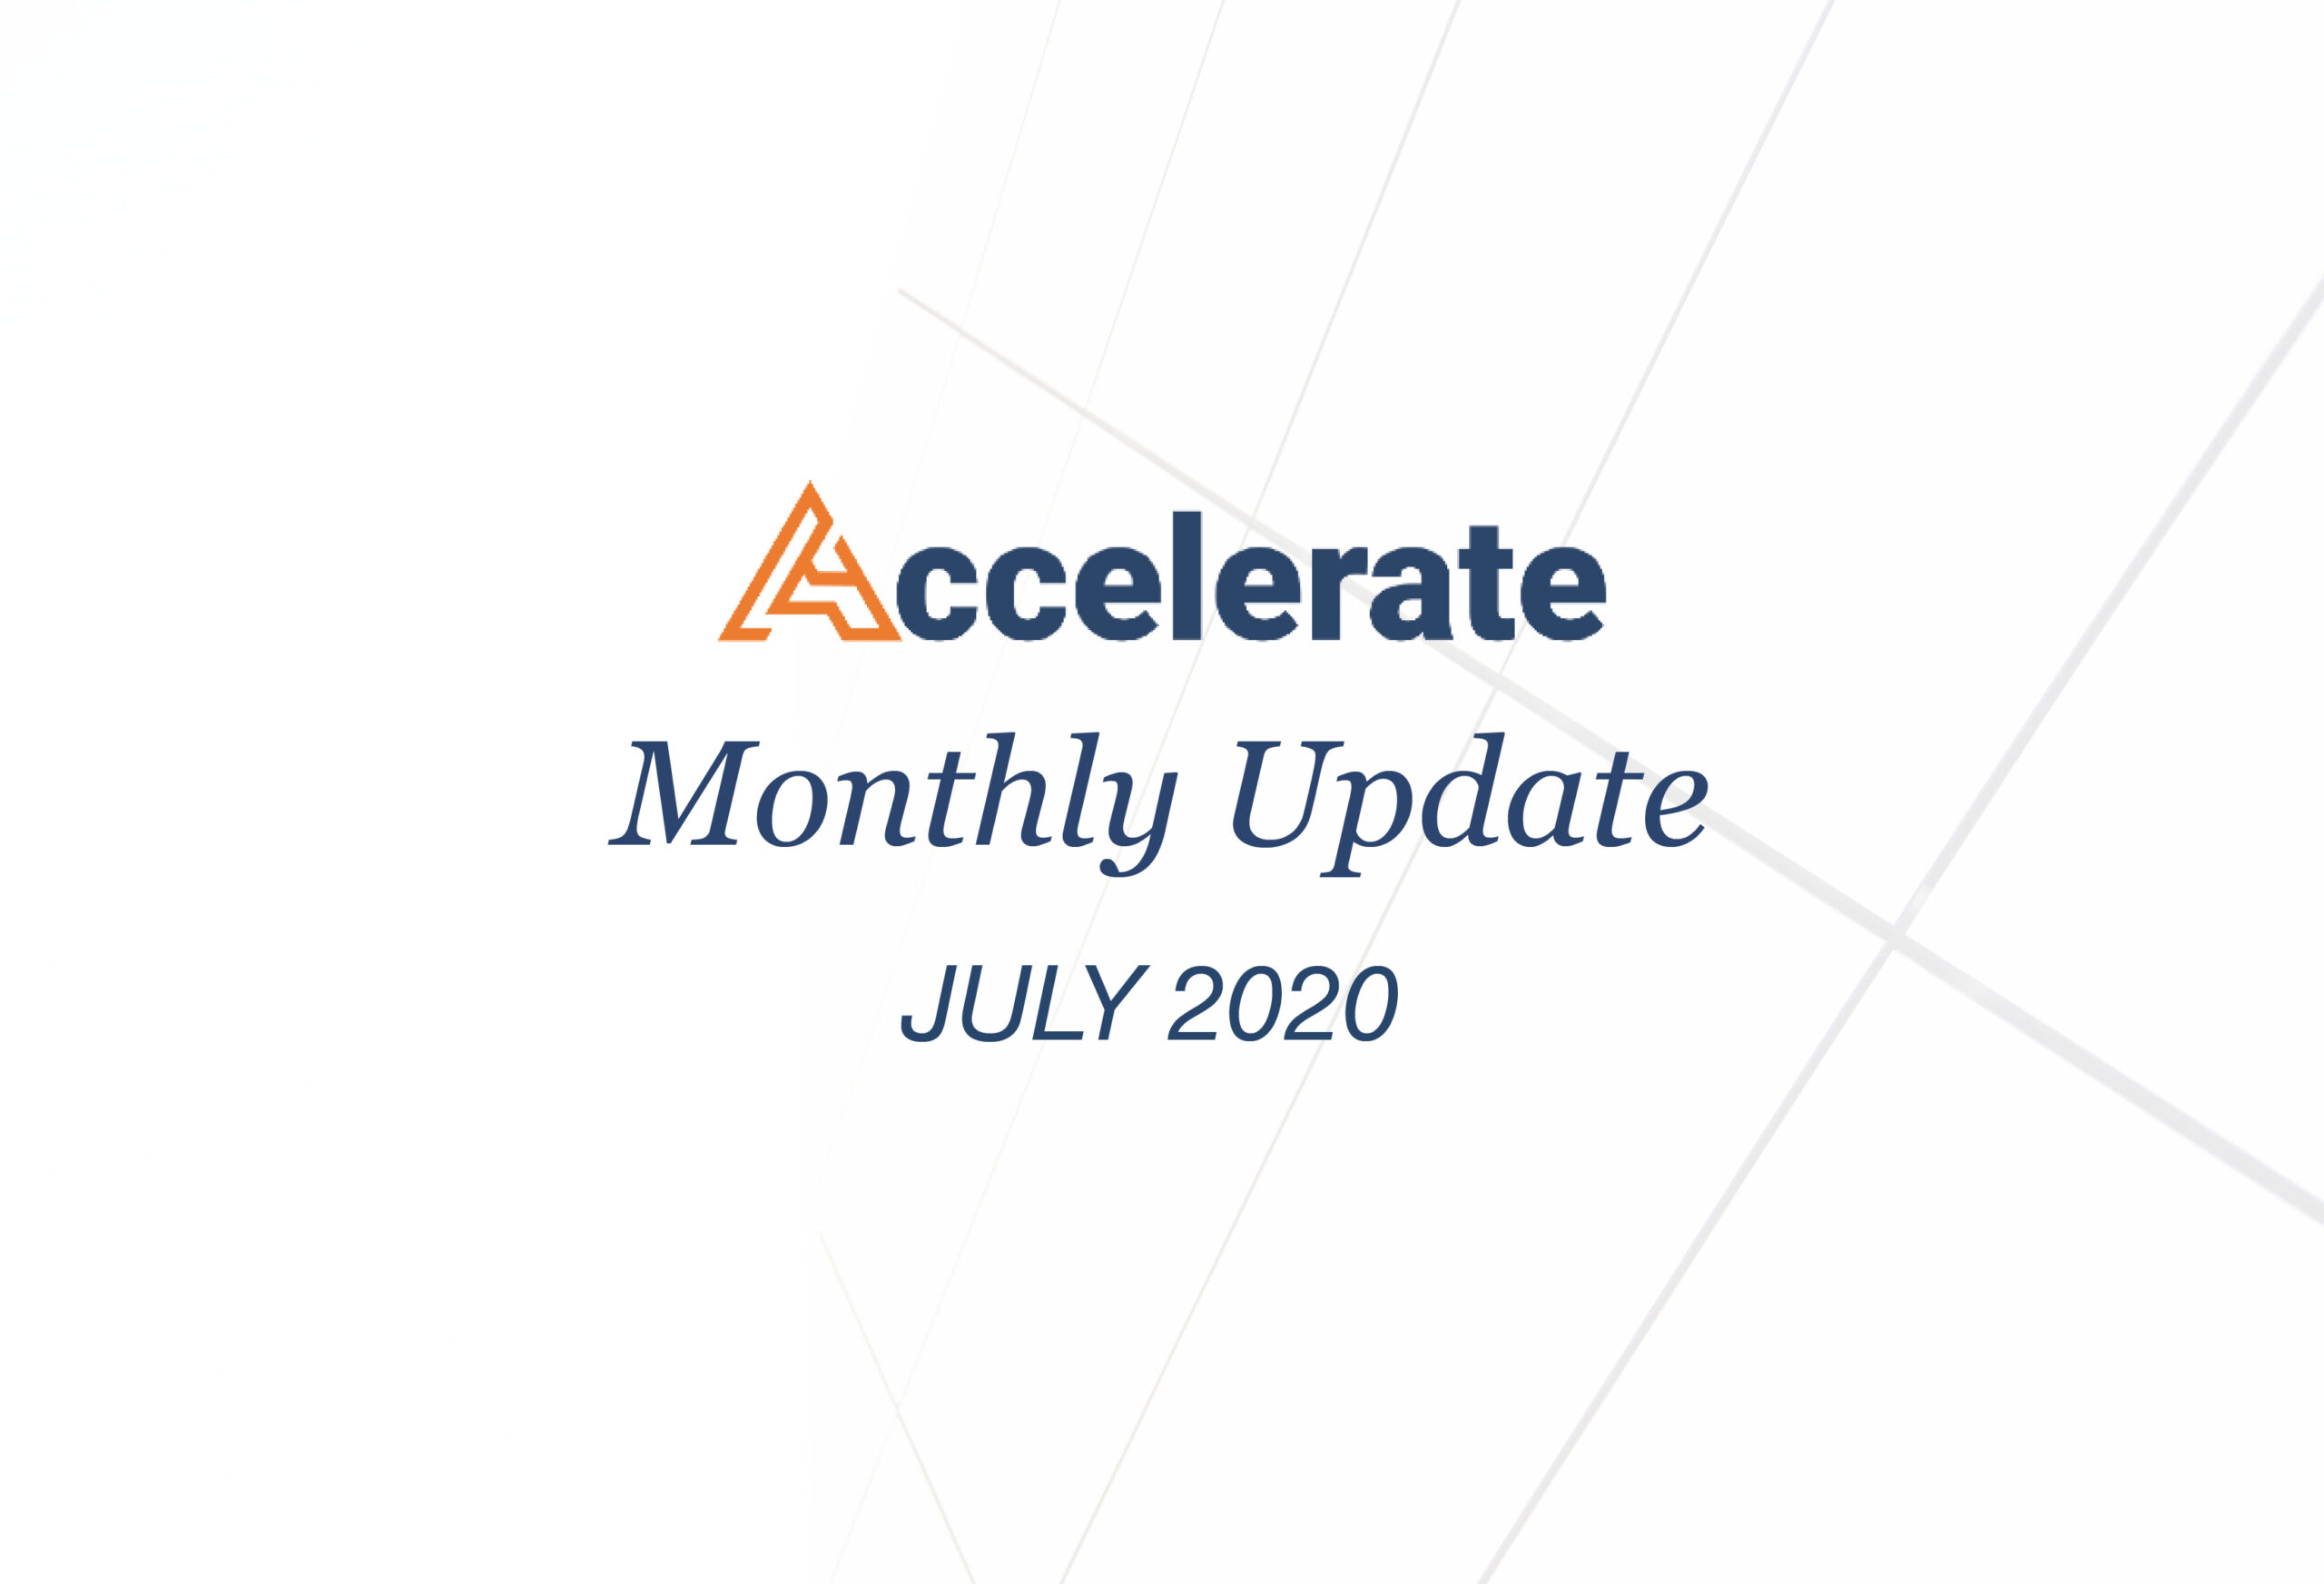 Accelerate Monthly Update – July 2020